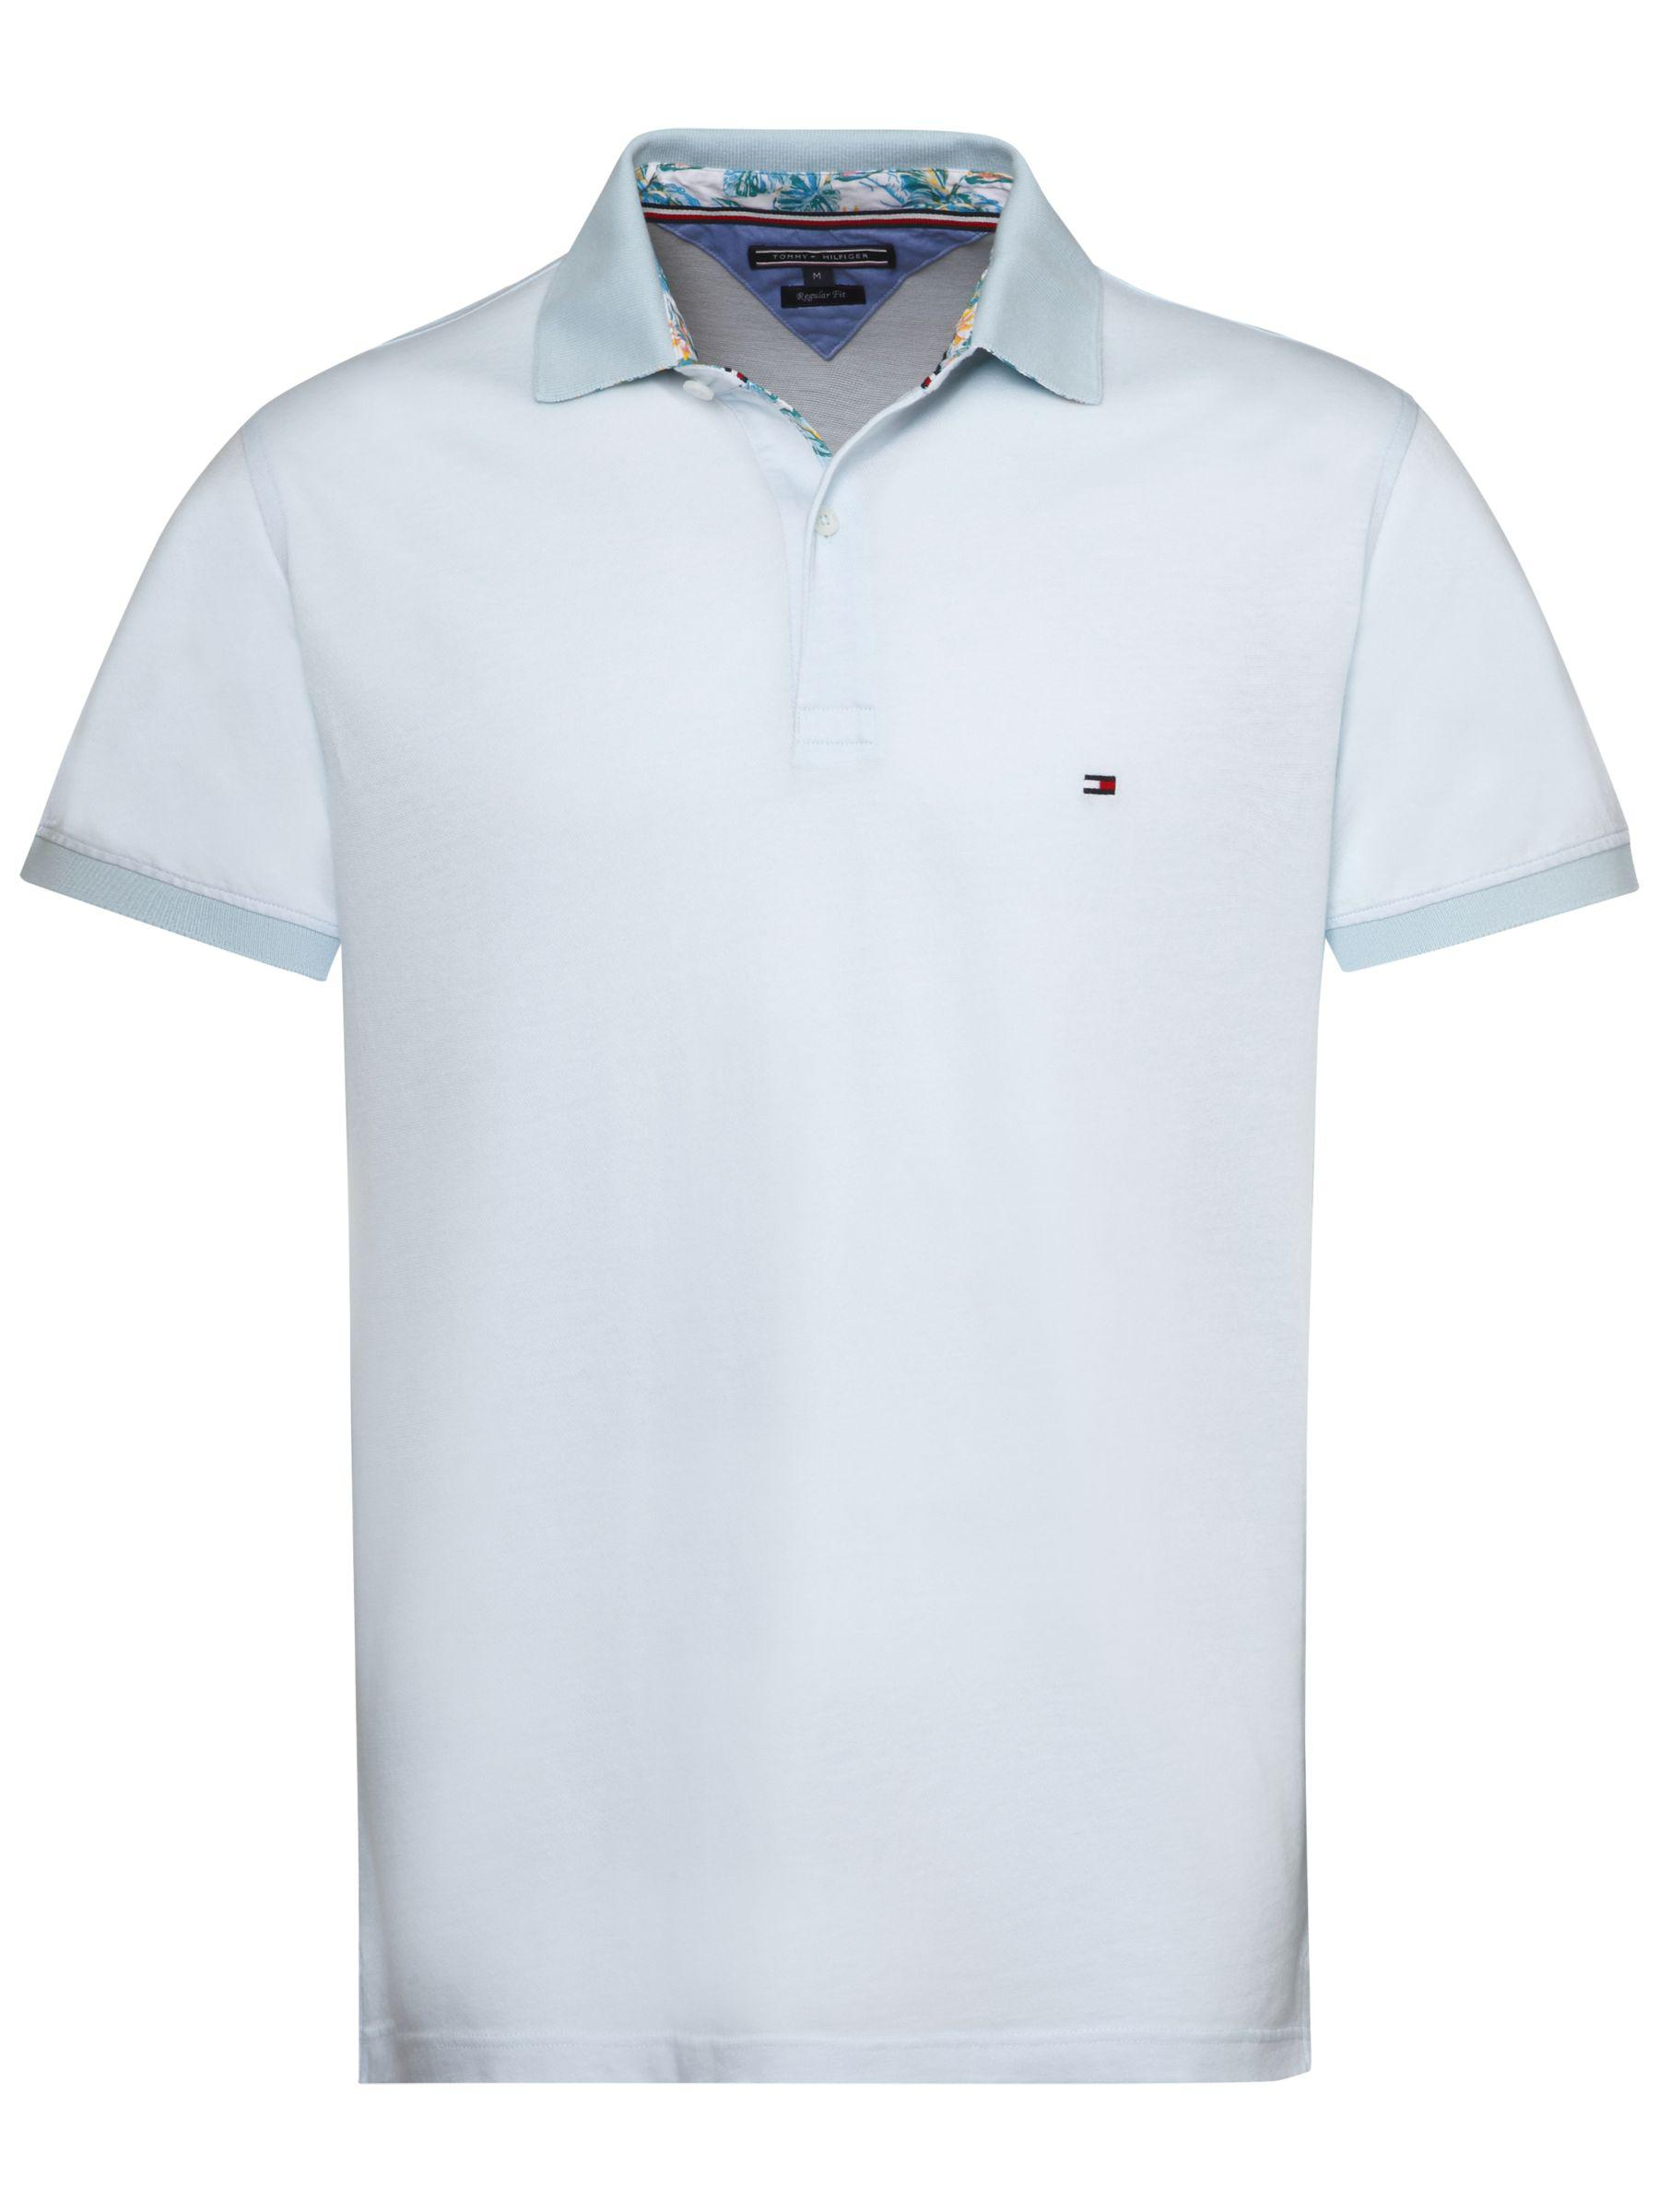 fb43f6f7 Tommy Hilfiger Printed Undercollar Polo Shirt in Blue for Men - Lyst